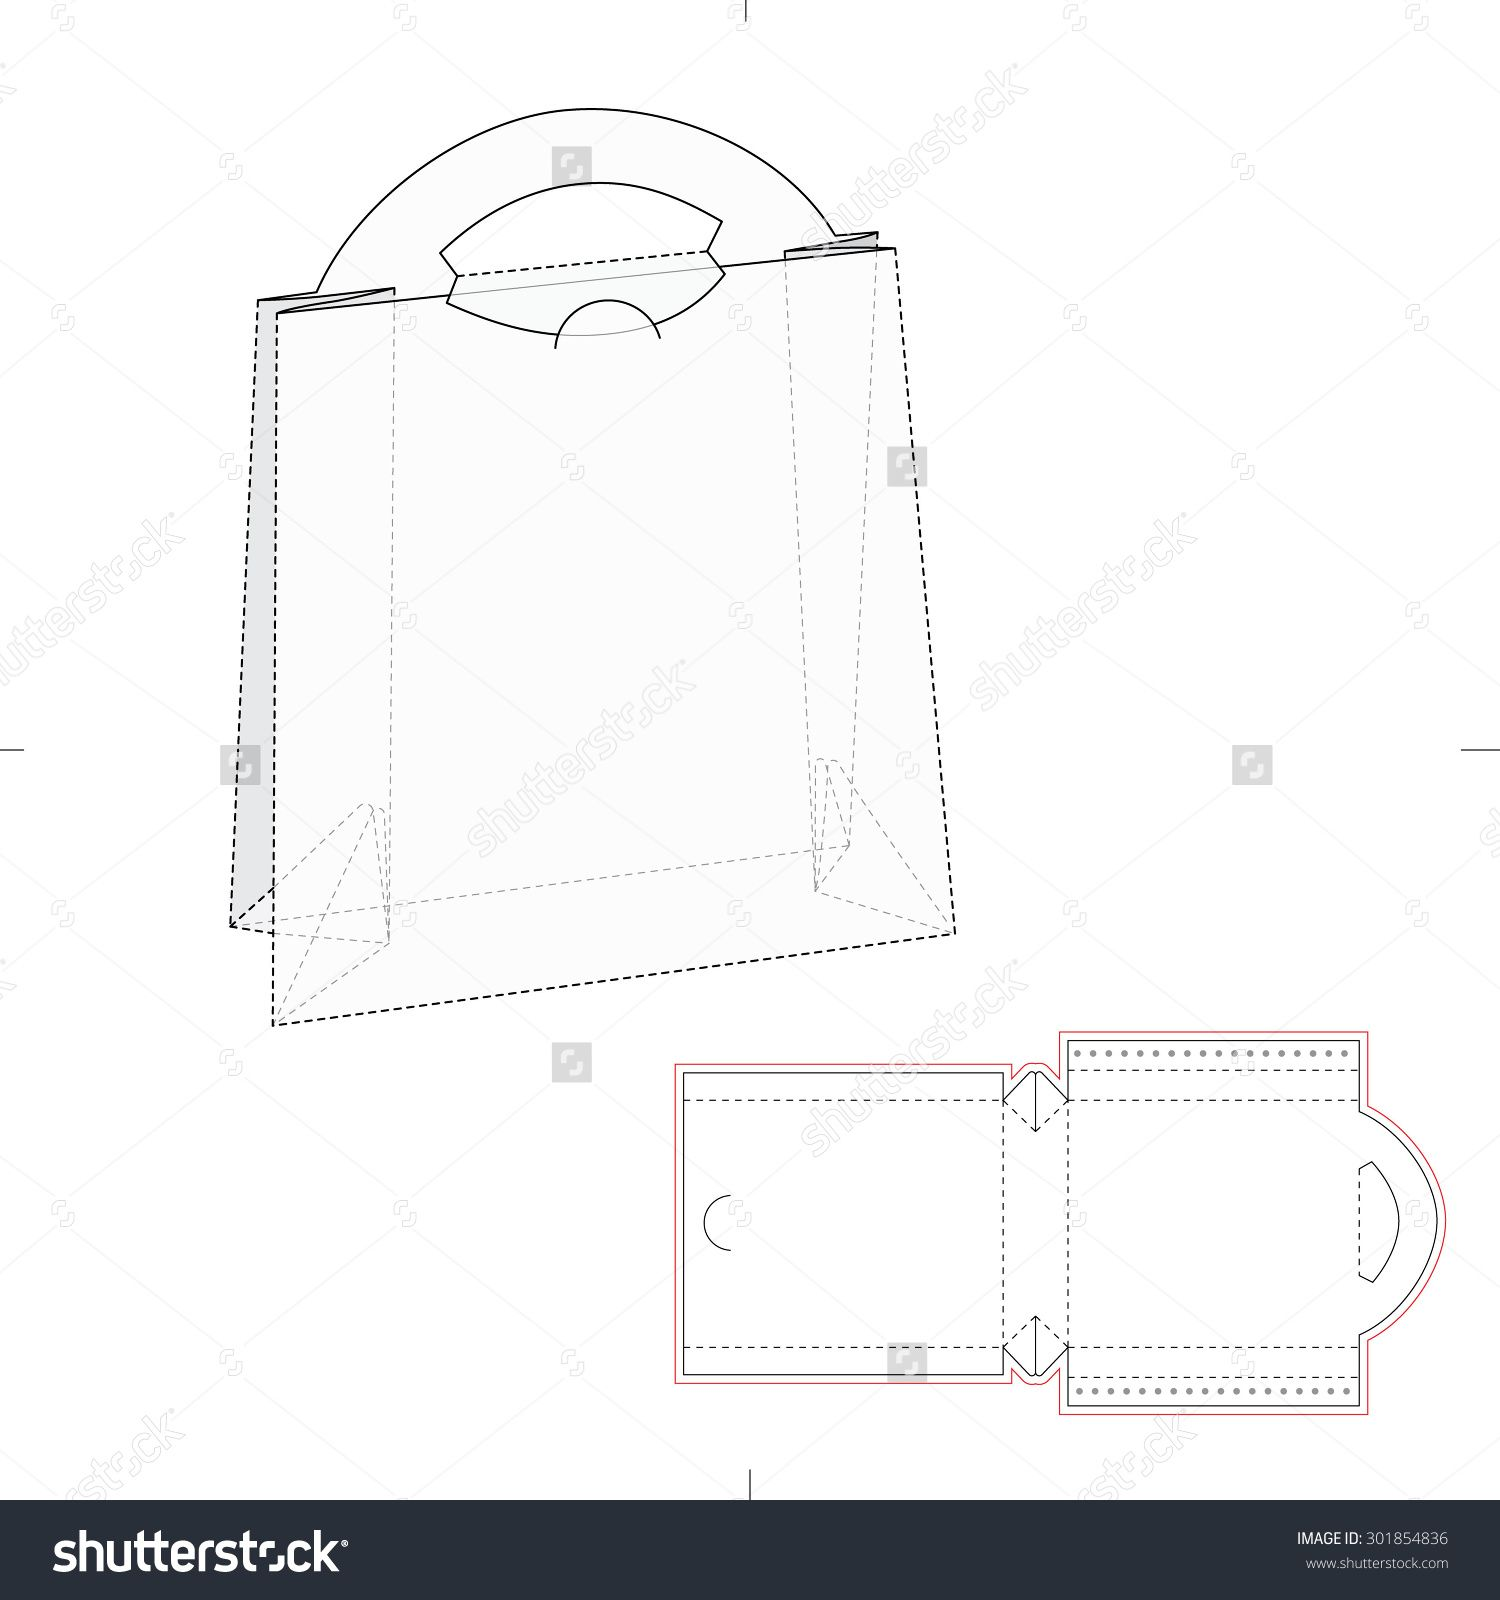 Paper bag with blueprint and layout stock vector illustration paper bag with blueprint and layout stock vector illustration 301854836 shutterstock malvernweather Choice Image